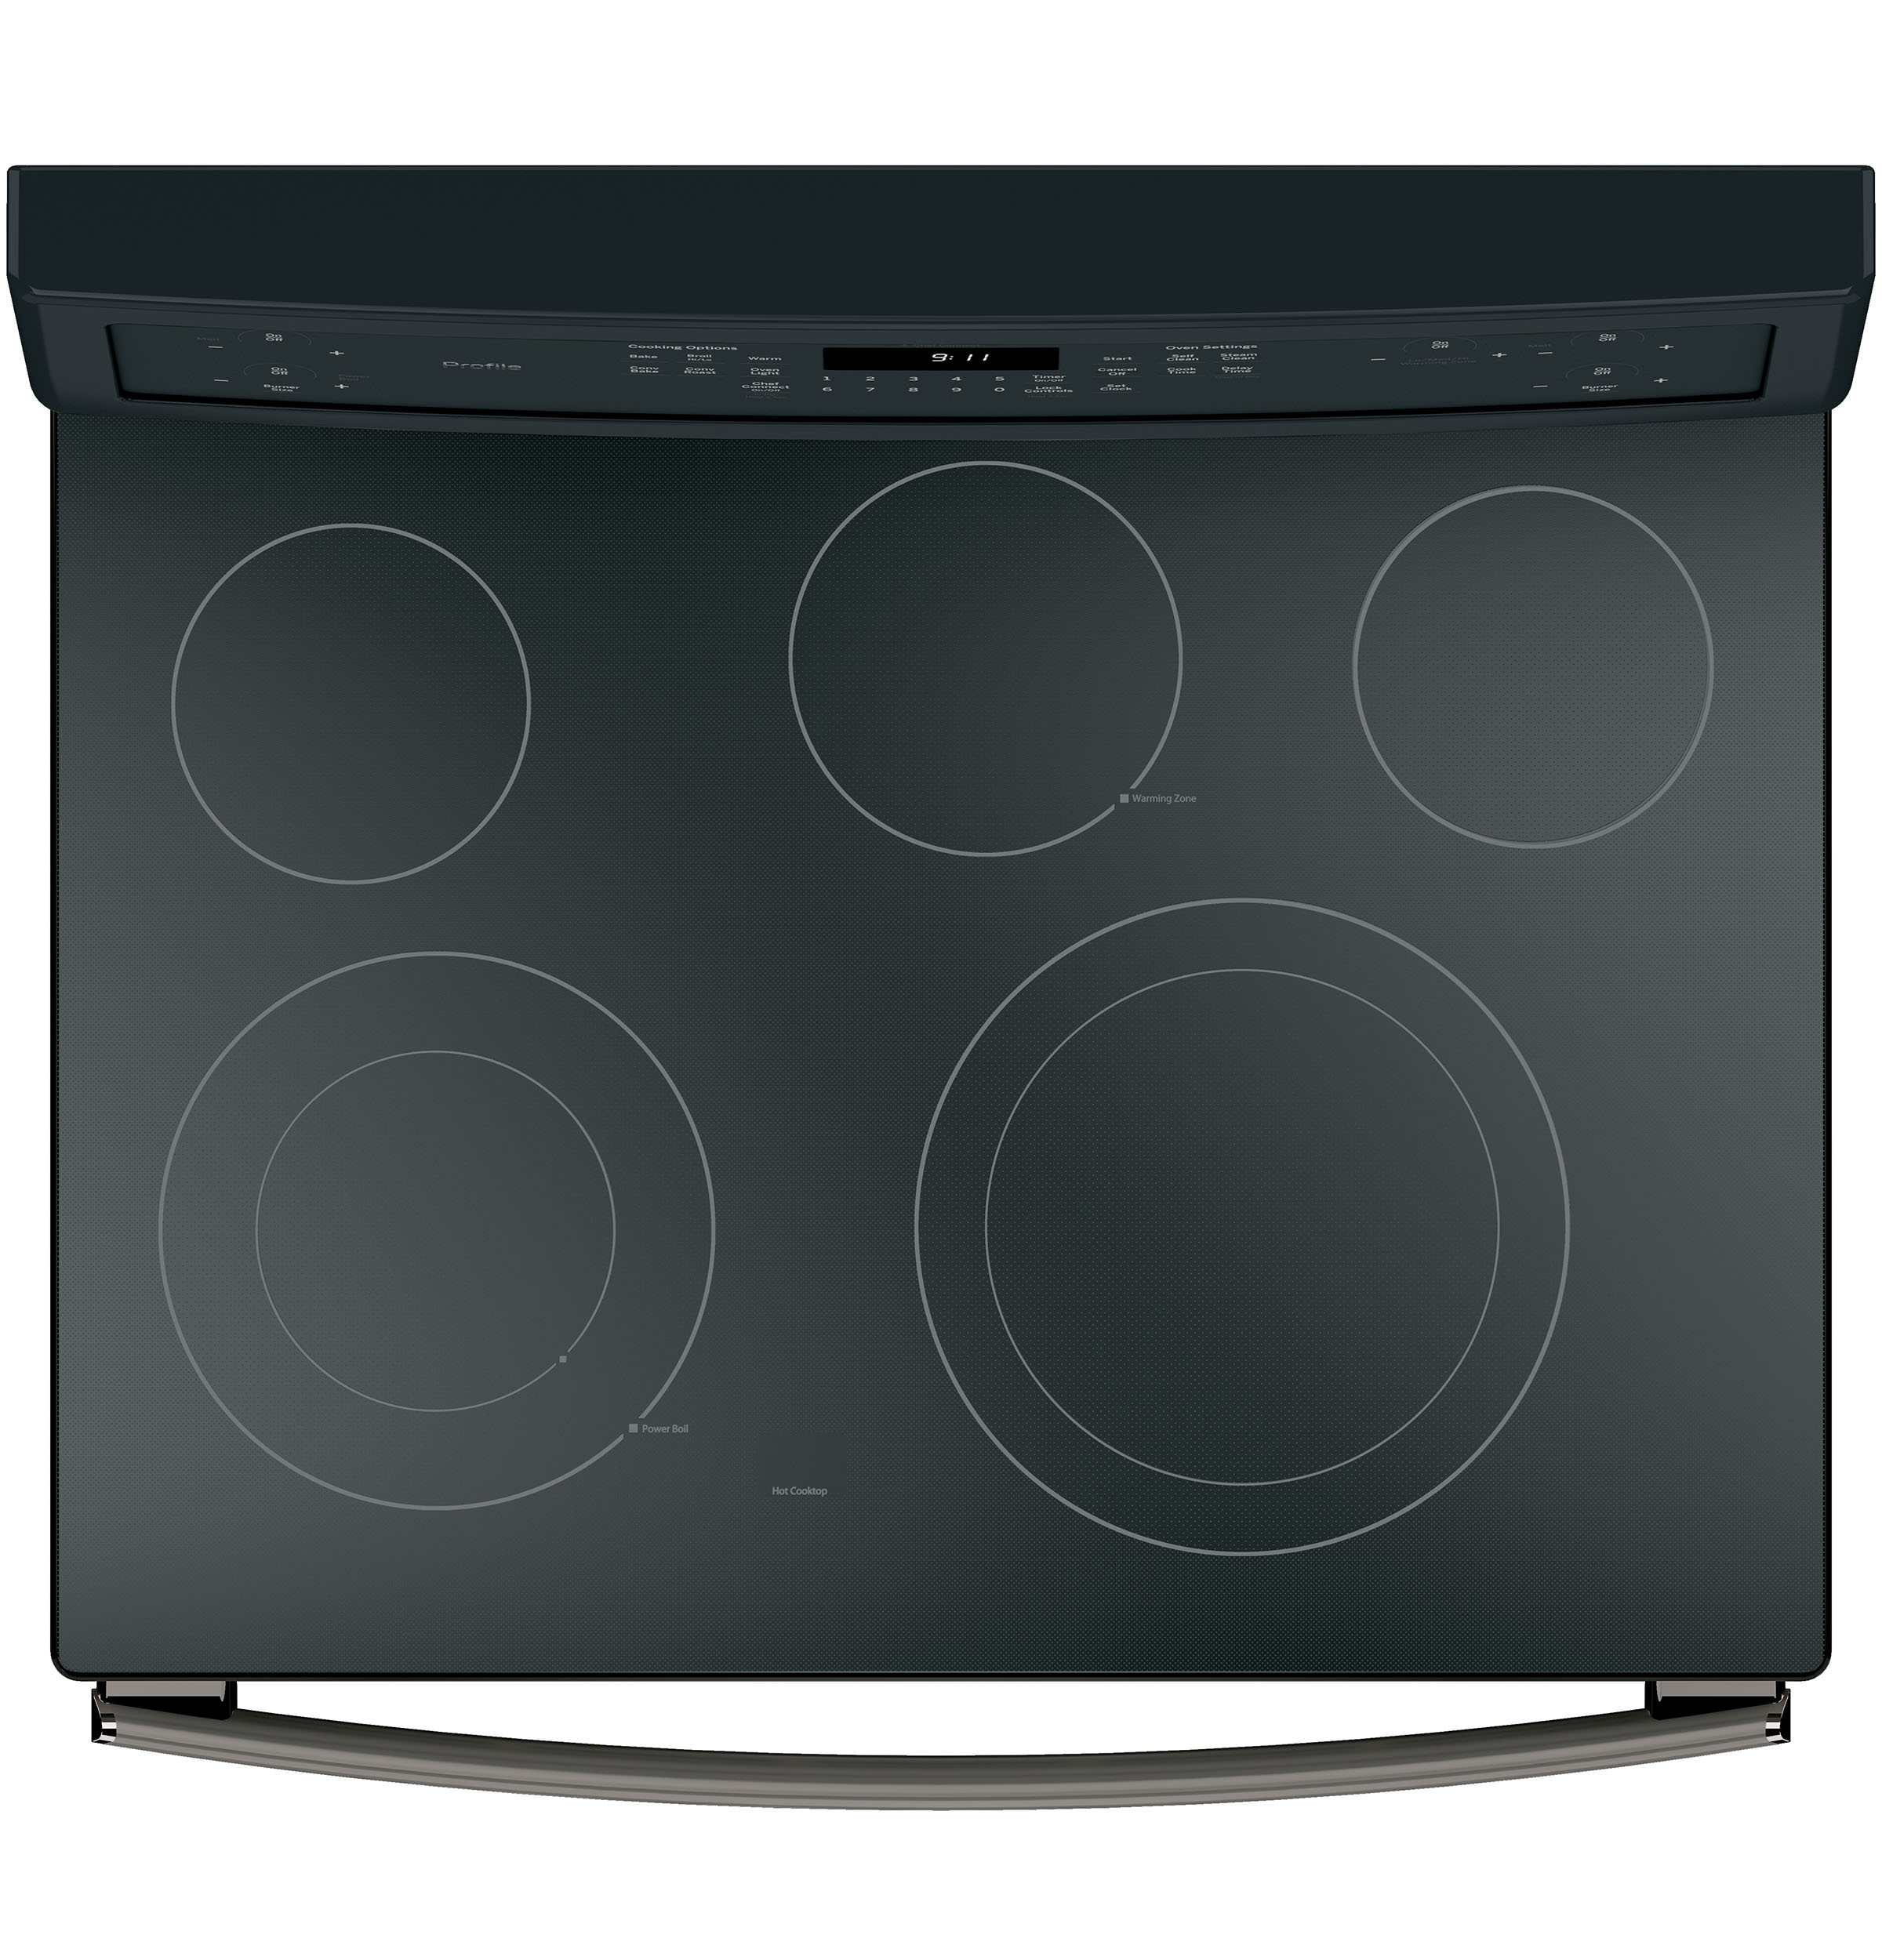 "Model: PB911FJDS | GE Profile GE Profile™ Series 30"" Free-Standing Electric Convection Range"